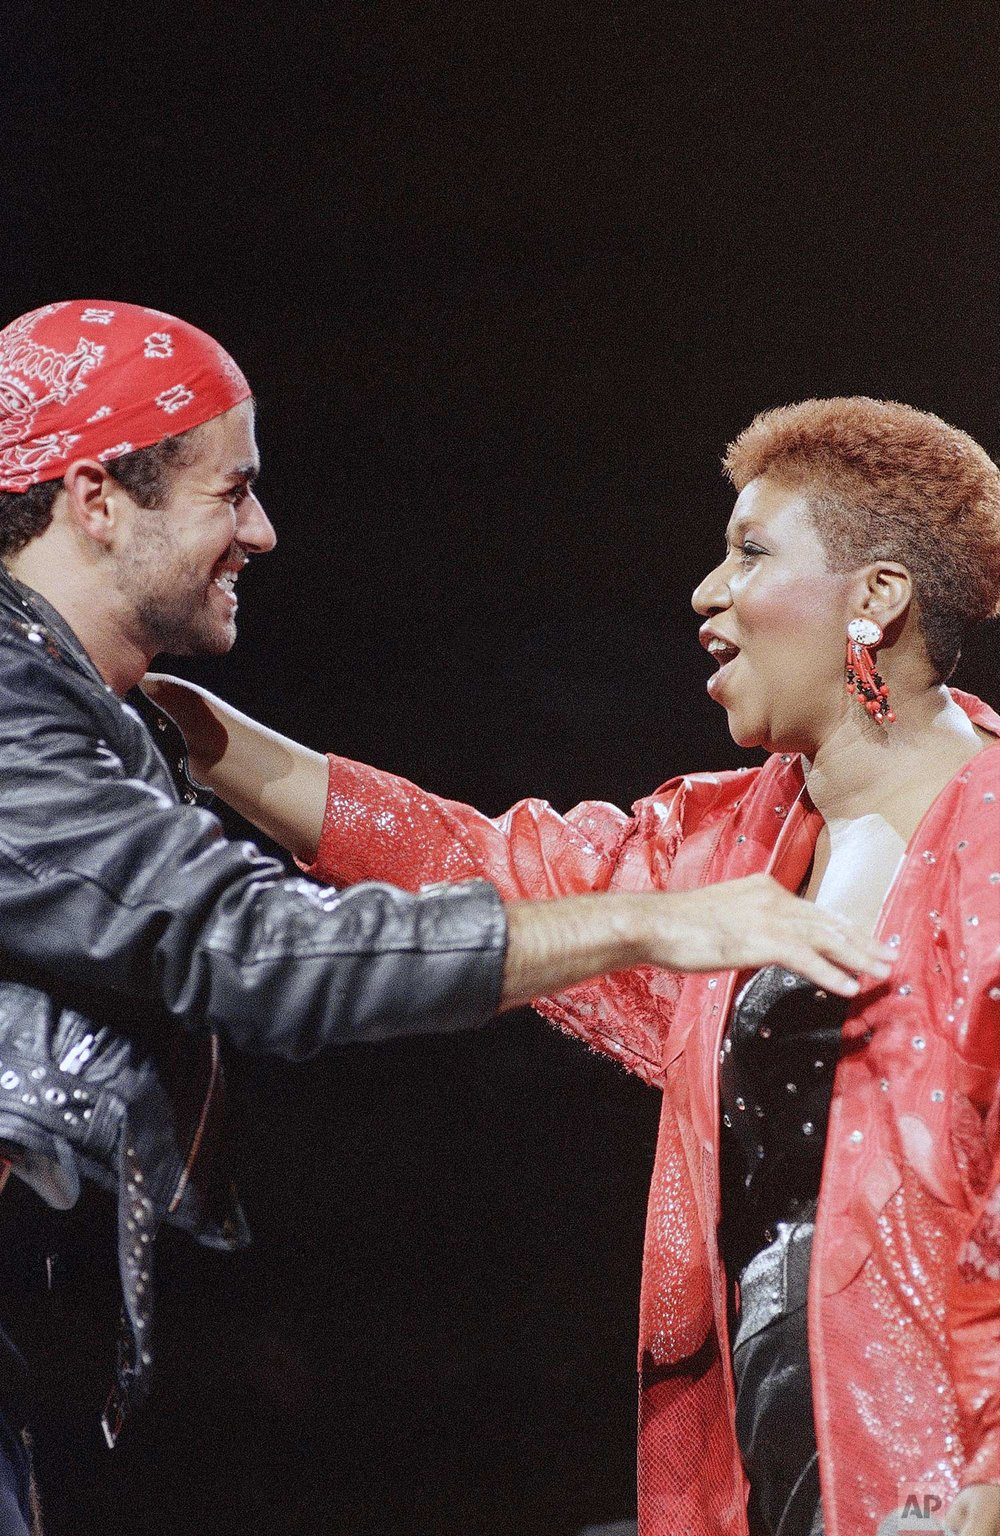 Singing great Aretha Franklin joins George Michael on stage during his Faith World Tour in the Detroit area at the Palace of Auburn Hills, Aug. 30, 1988. (AP Photo/Rob Kozloff)